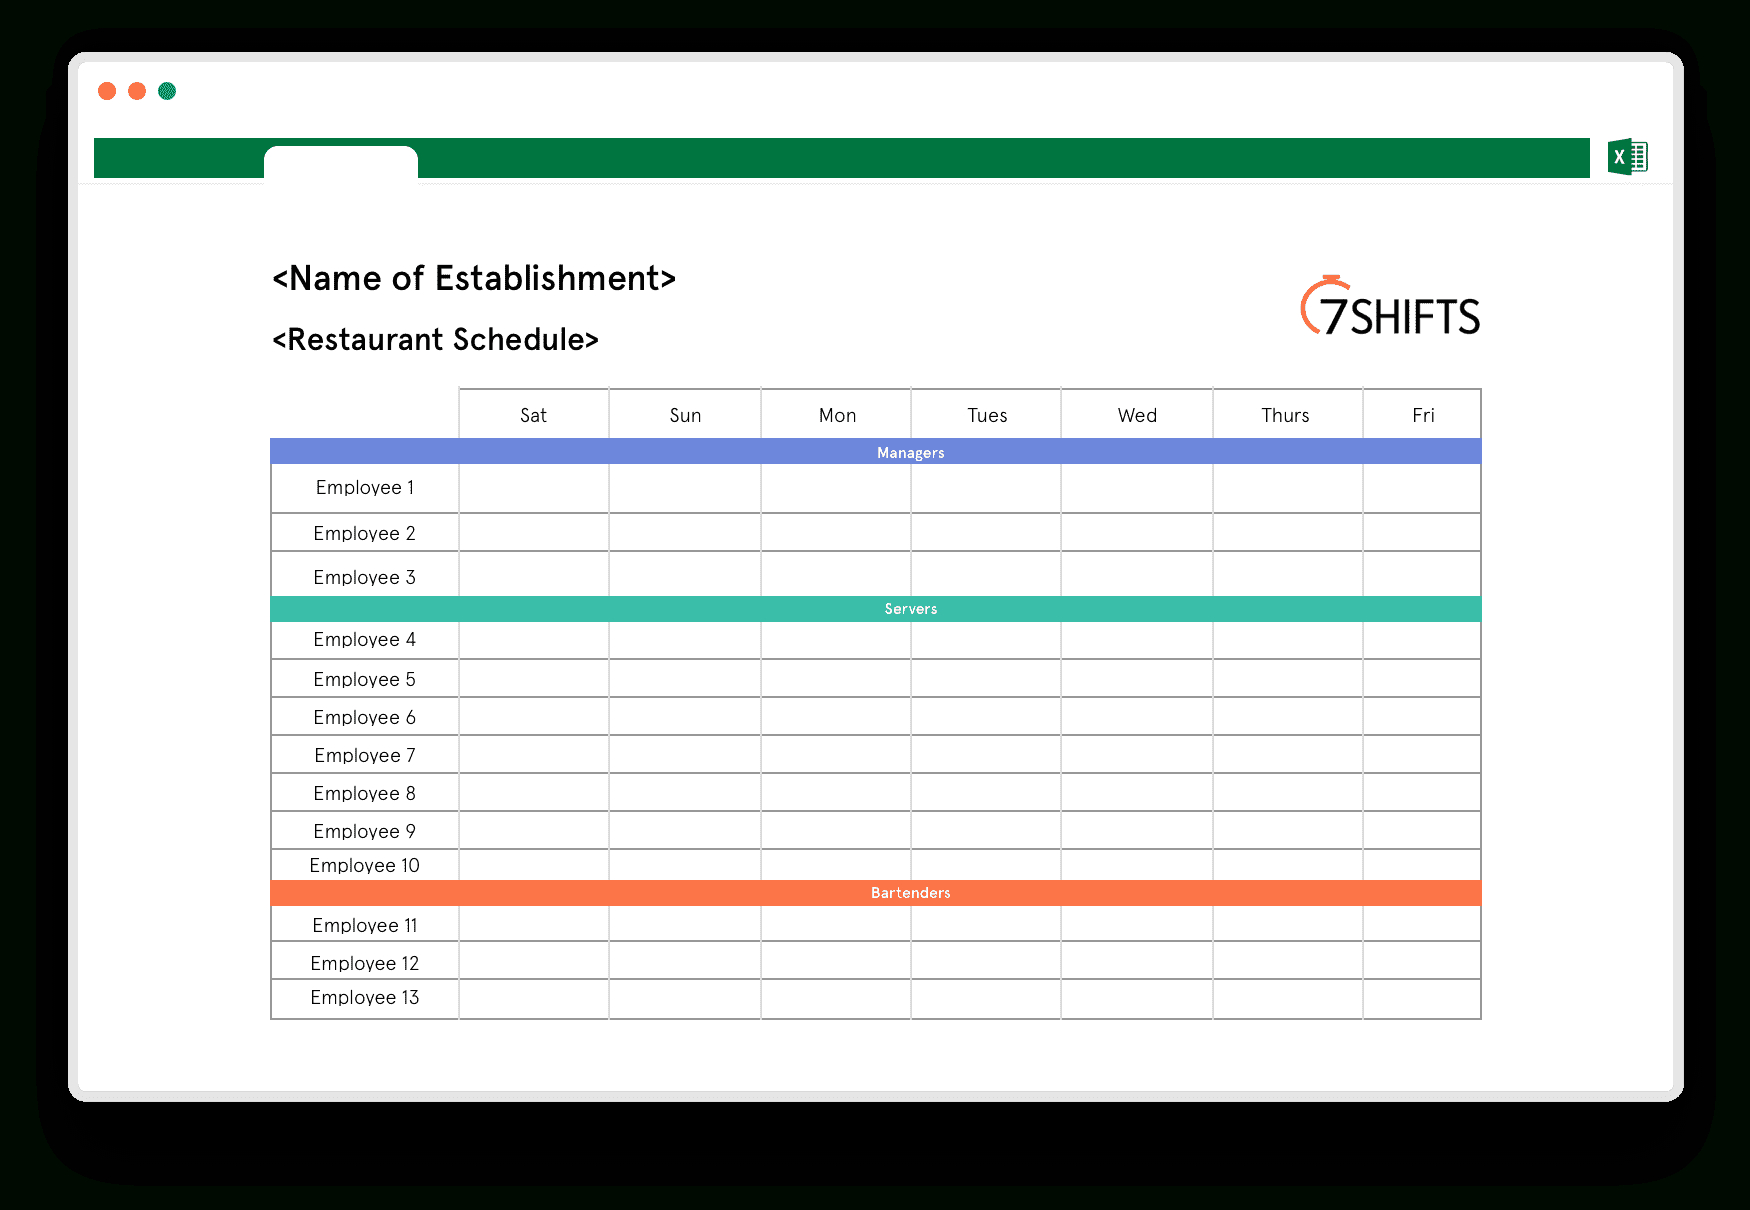 Restaurant Schedule Excel Template | 7Shifts for Free Shift Calendar Templates